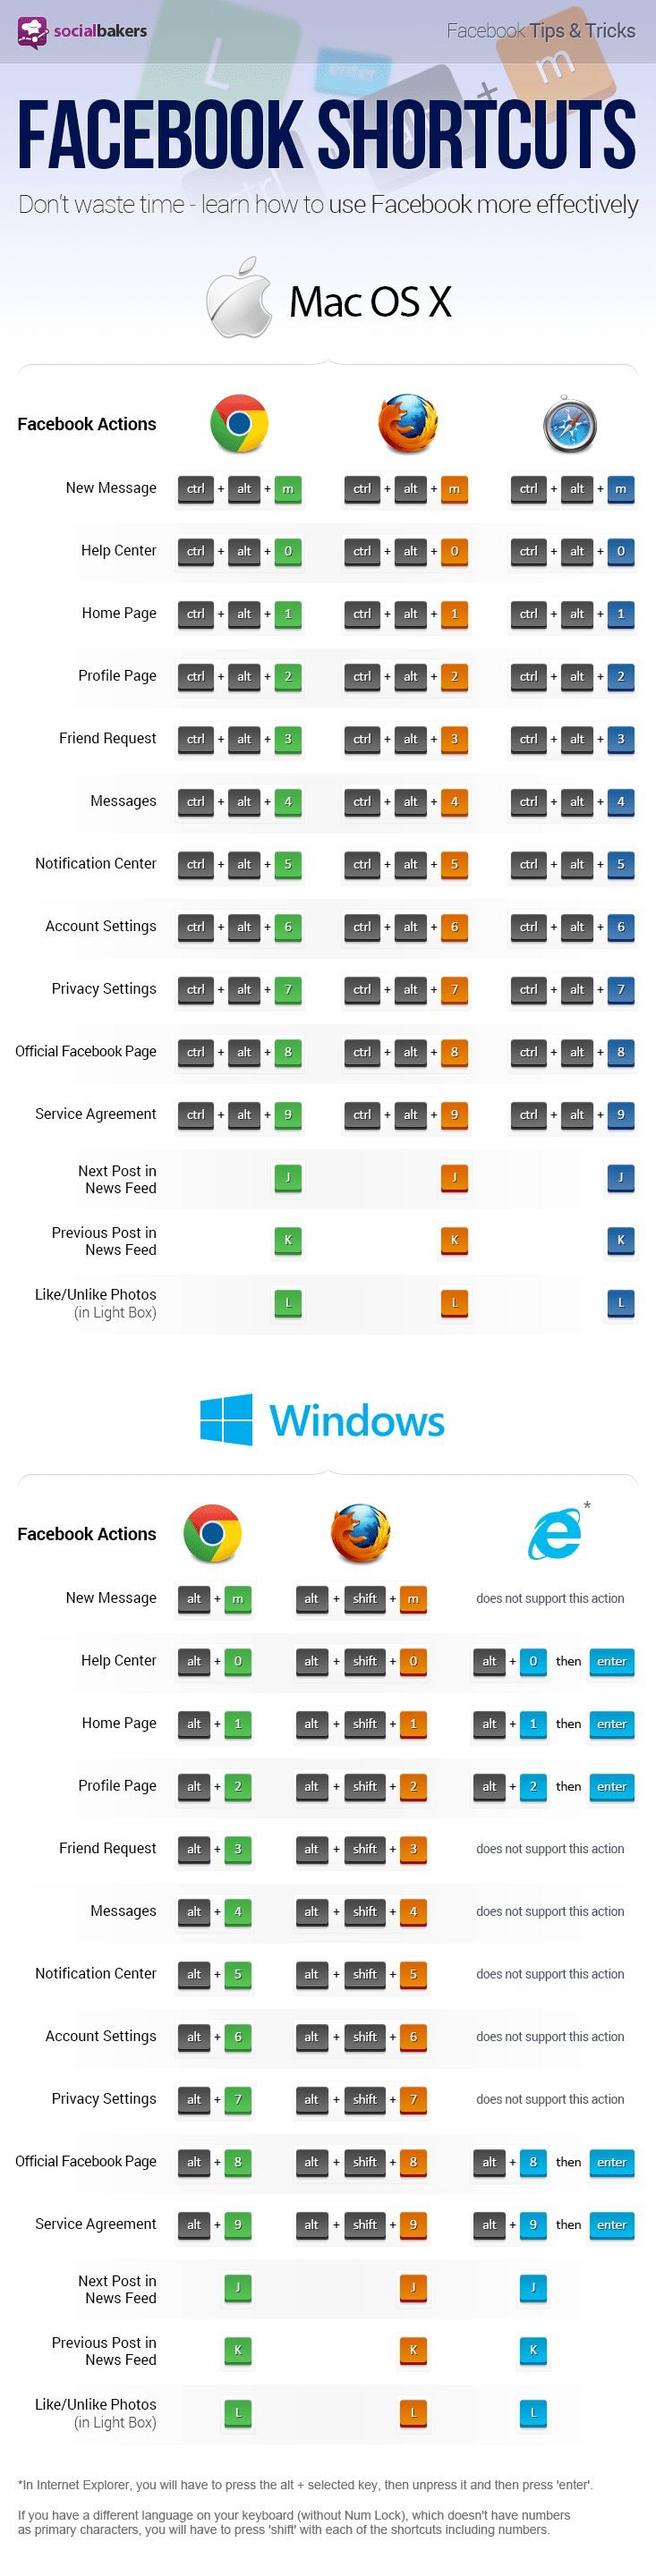 If you want to become a Facebook action shortcuts ninja then this cheat sheet is exactly what you need. Learn the shortcuts for your browser and rule!